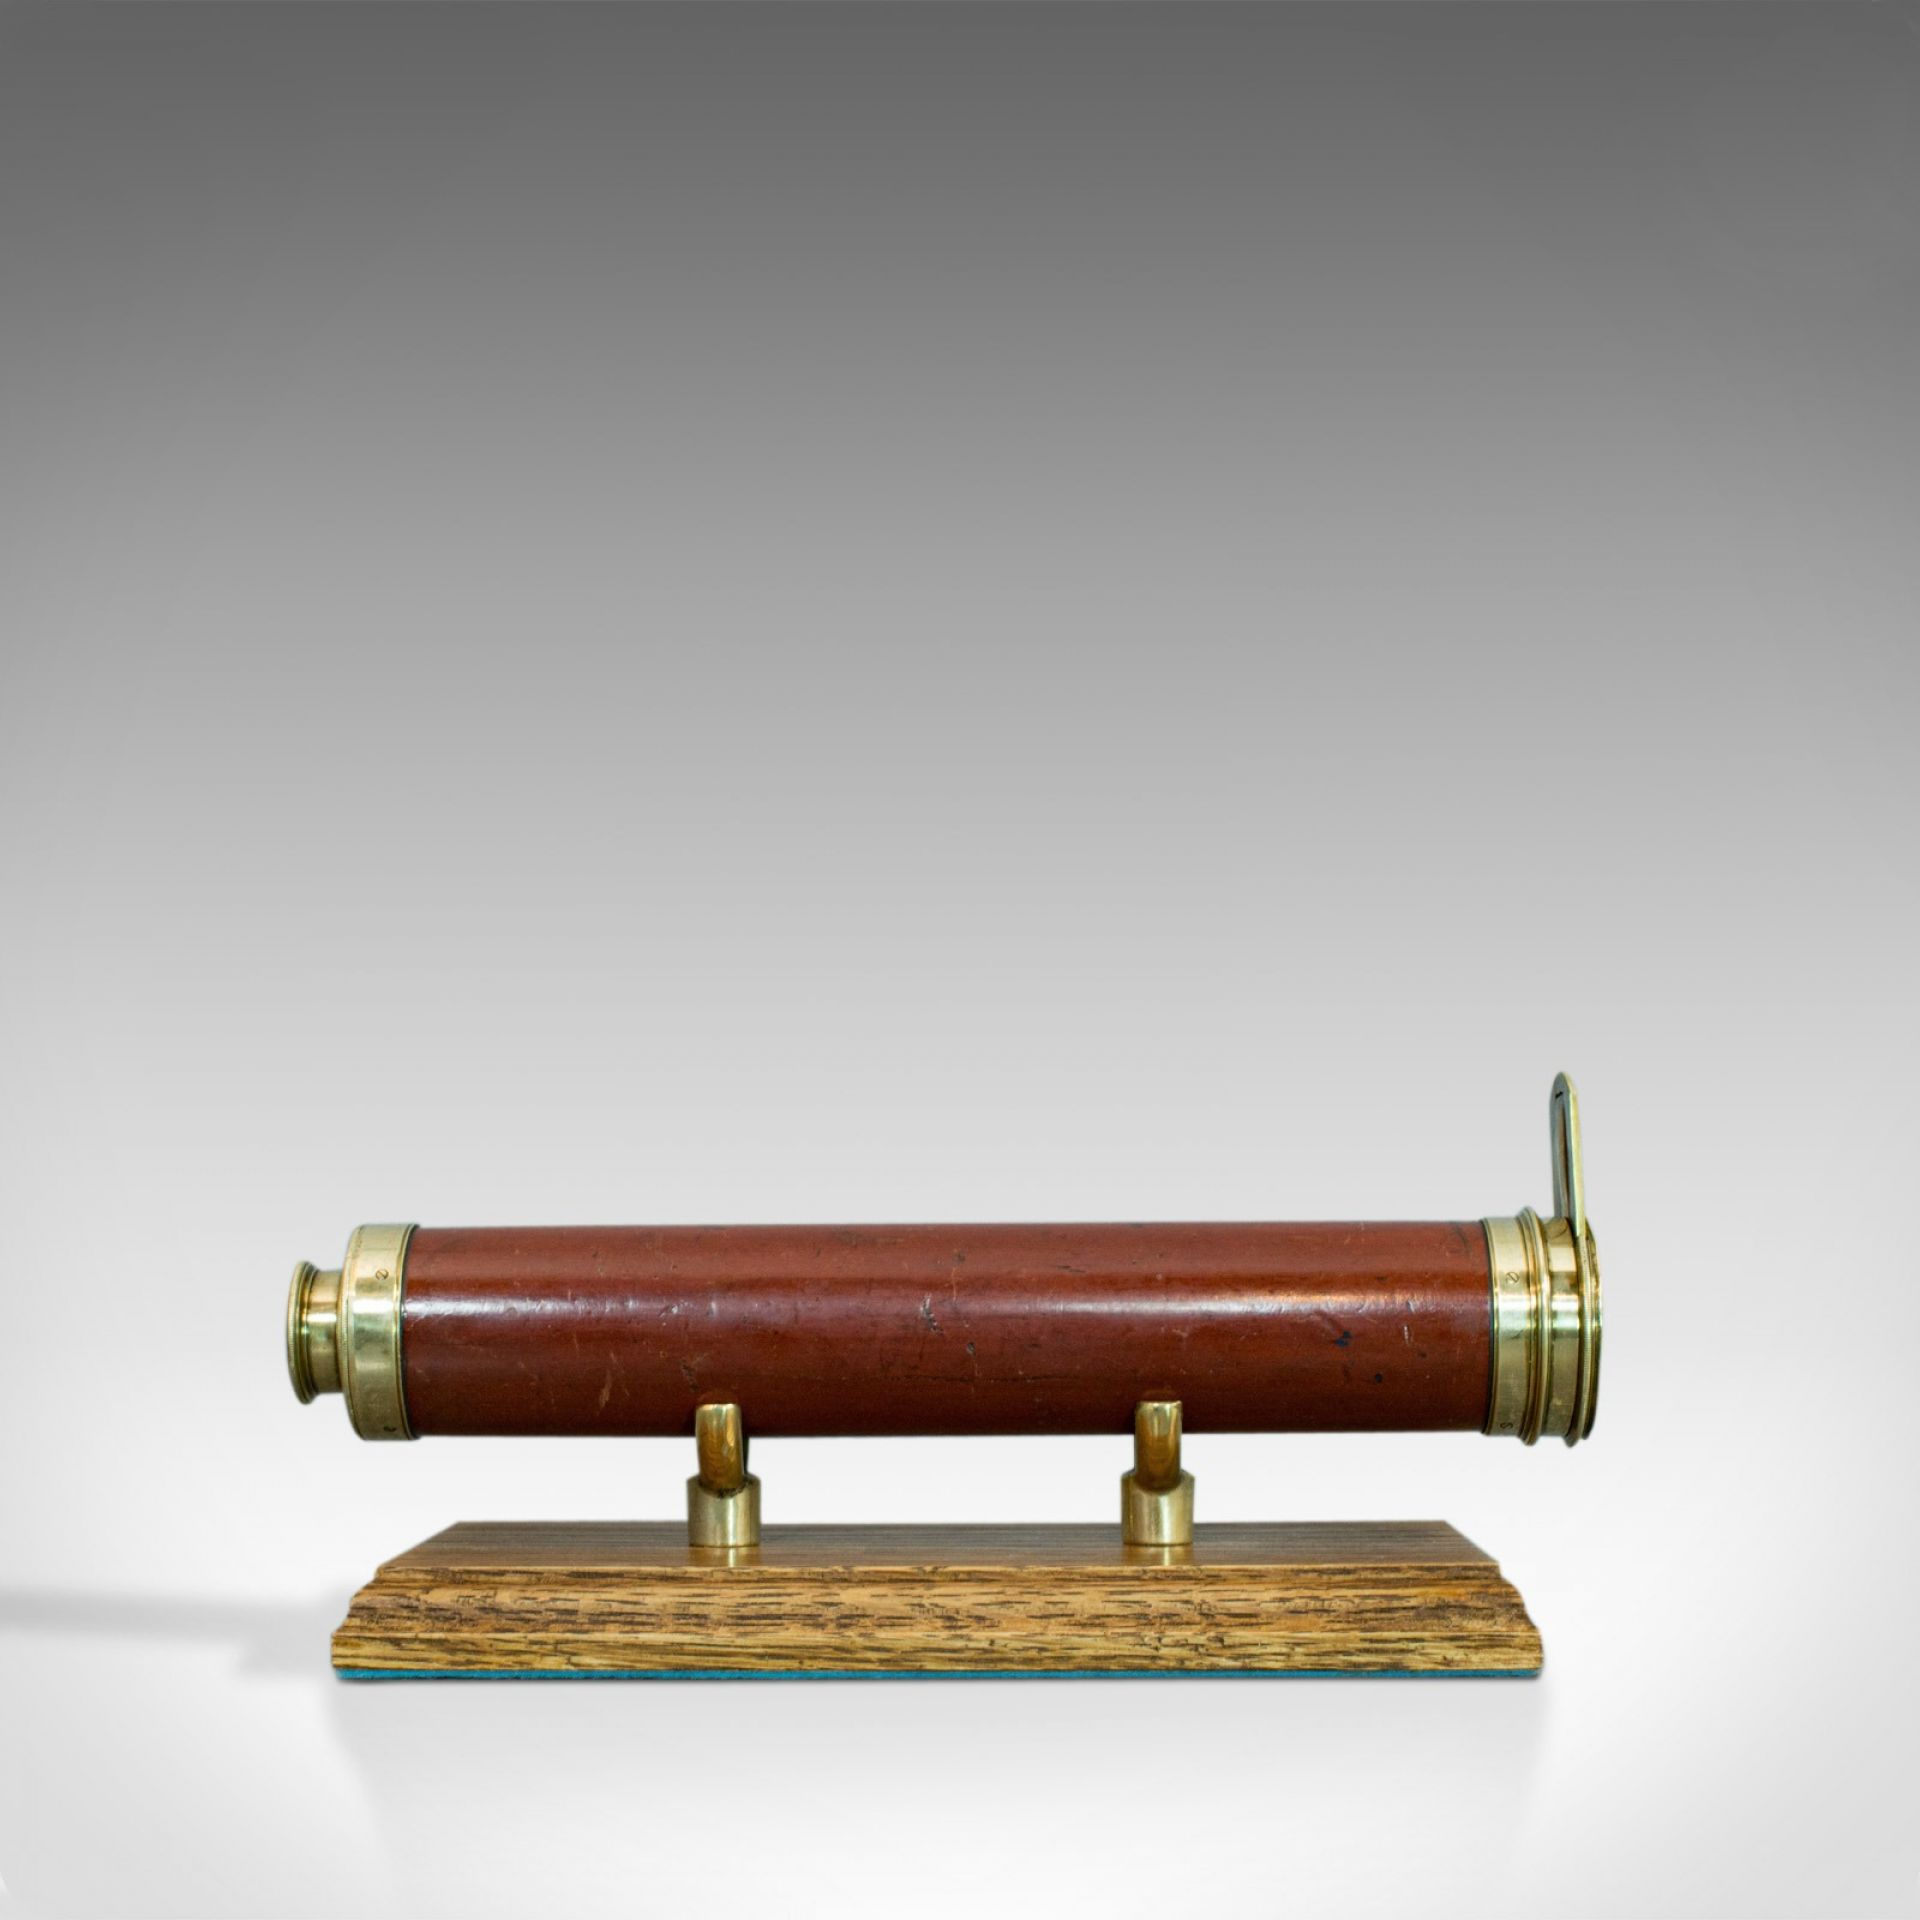 Antique Telescope, English, Refractor, Dollond of London, circa 1820